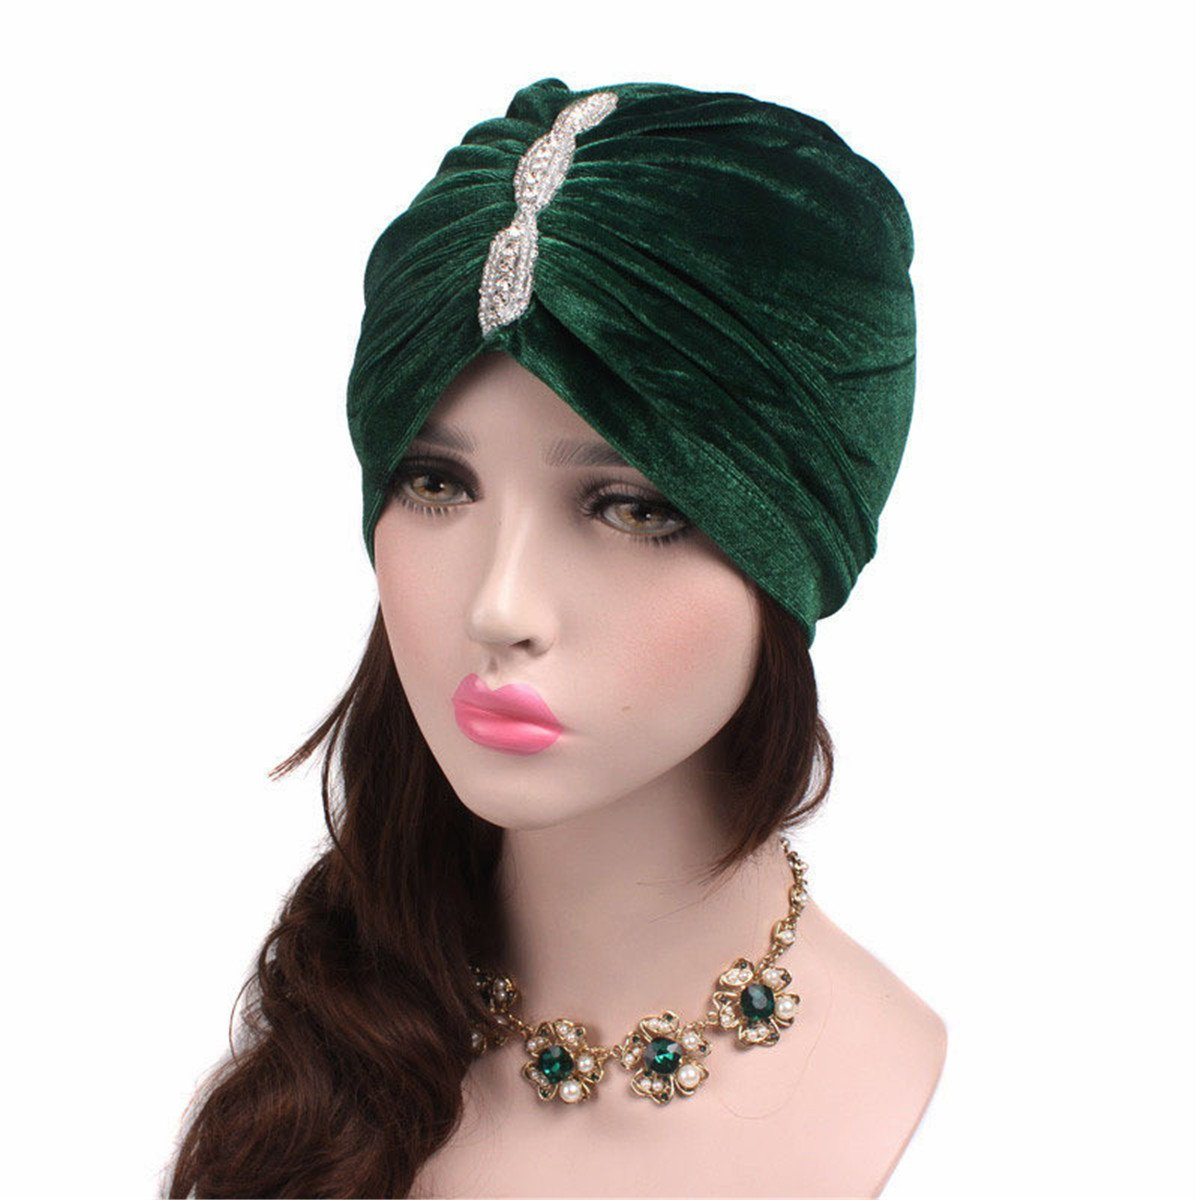 Vintage Hair Accessories: Combs, Headbands, Flowers, Scarf, Wigs Qhome Fashion Women Luxury Diamante Soft Velvet Turban Headband India Muslim Hat Chemo Beanie Hat Turbante Hair Accessories $10.99 AT vintagedancer.com